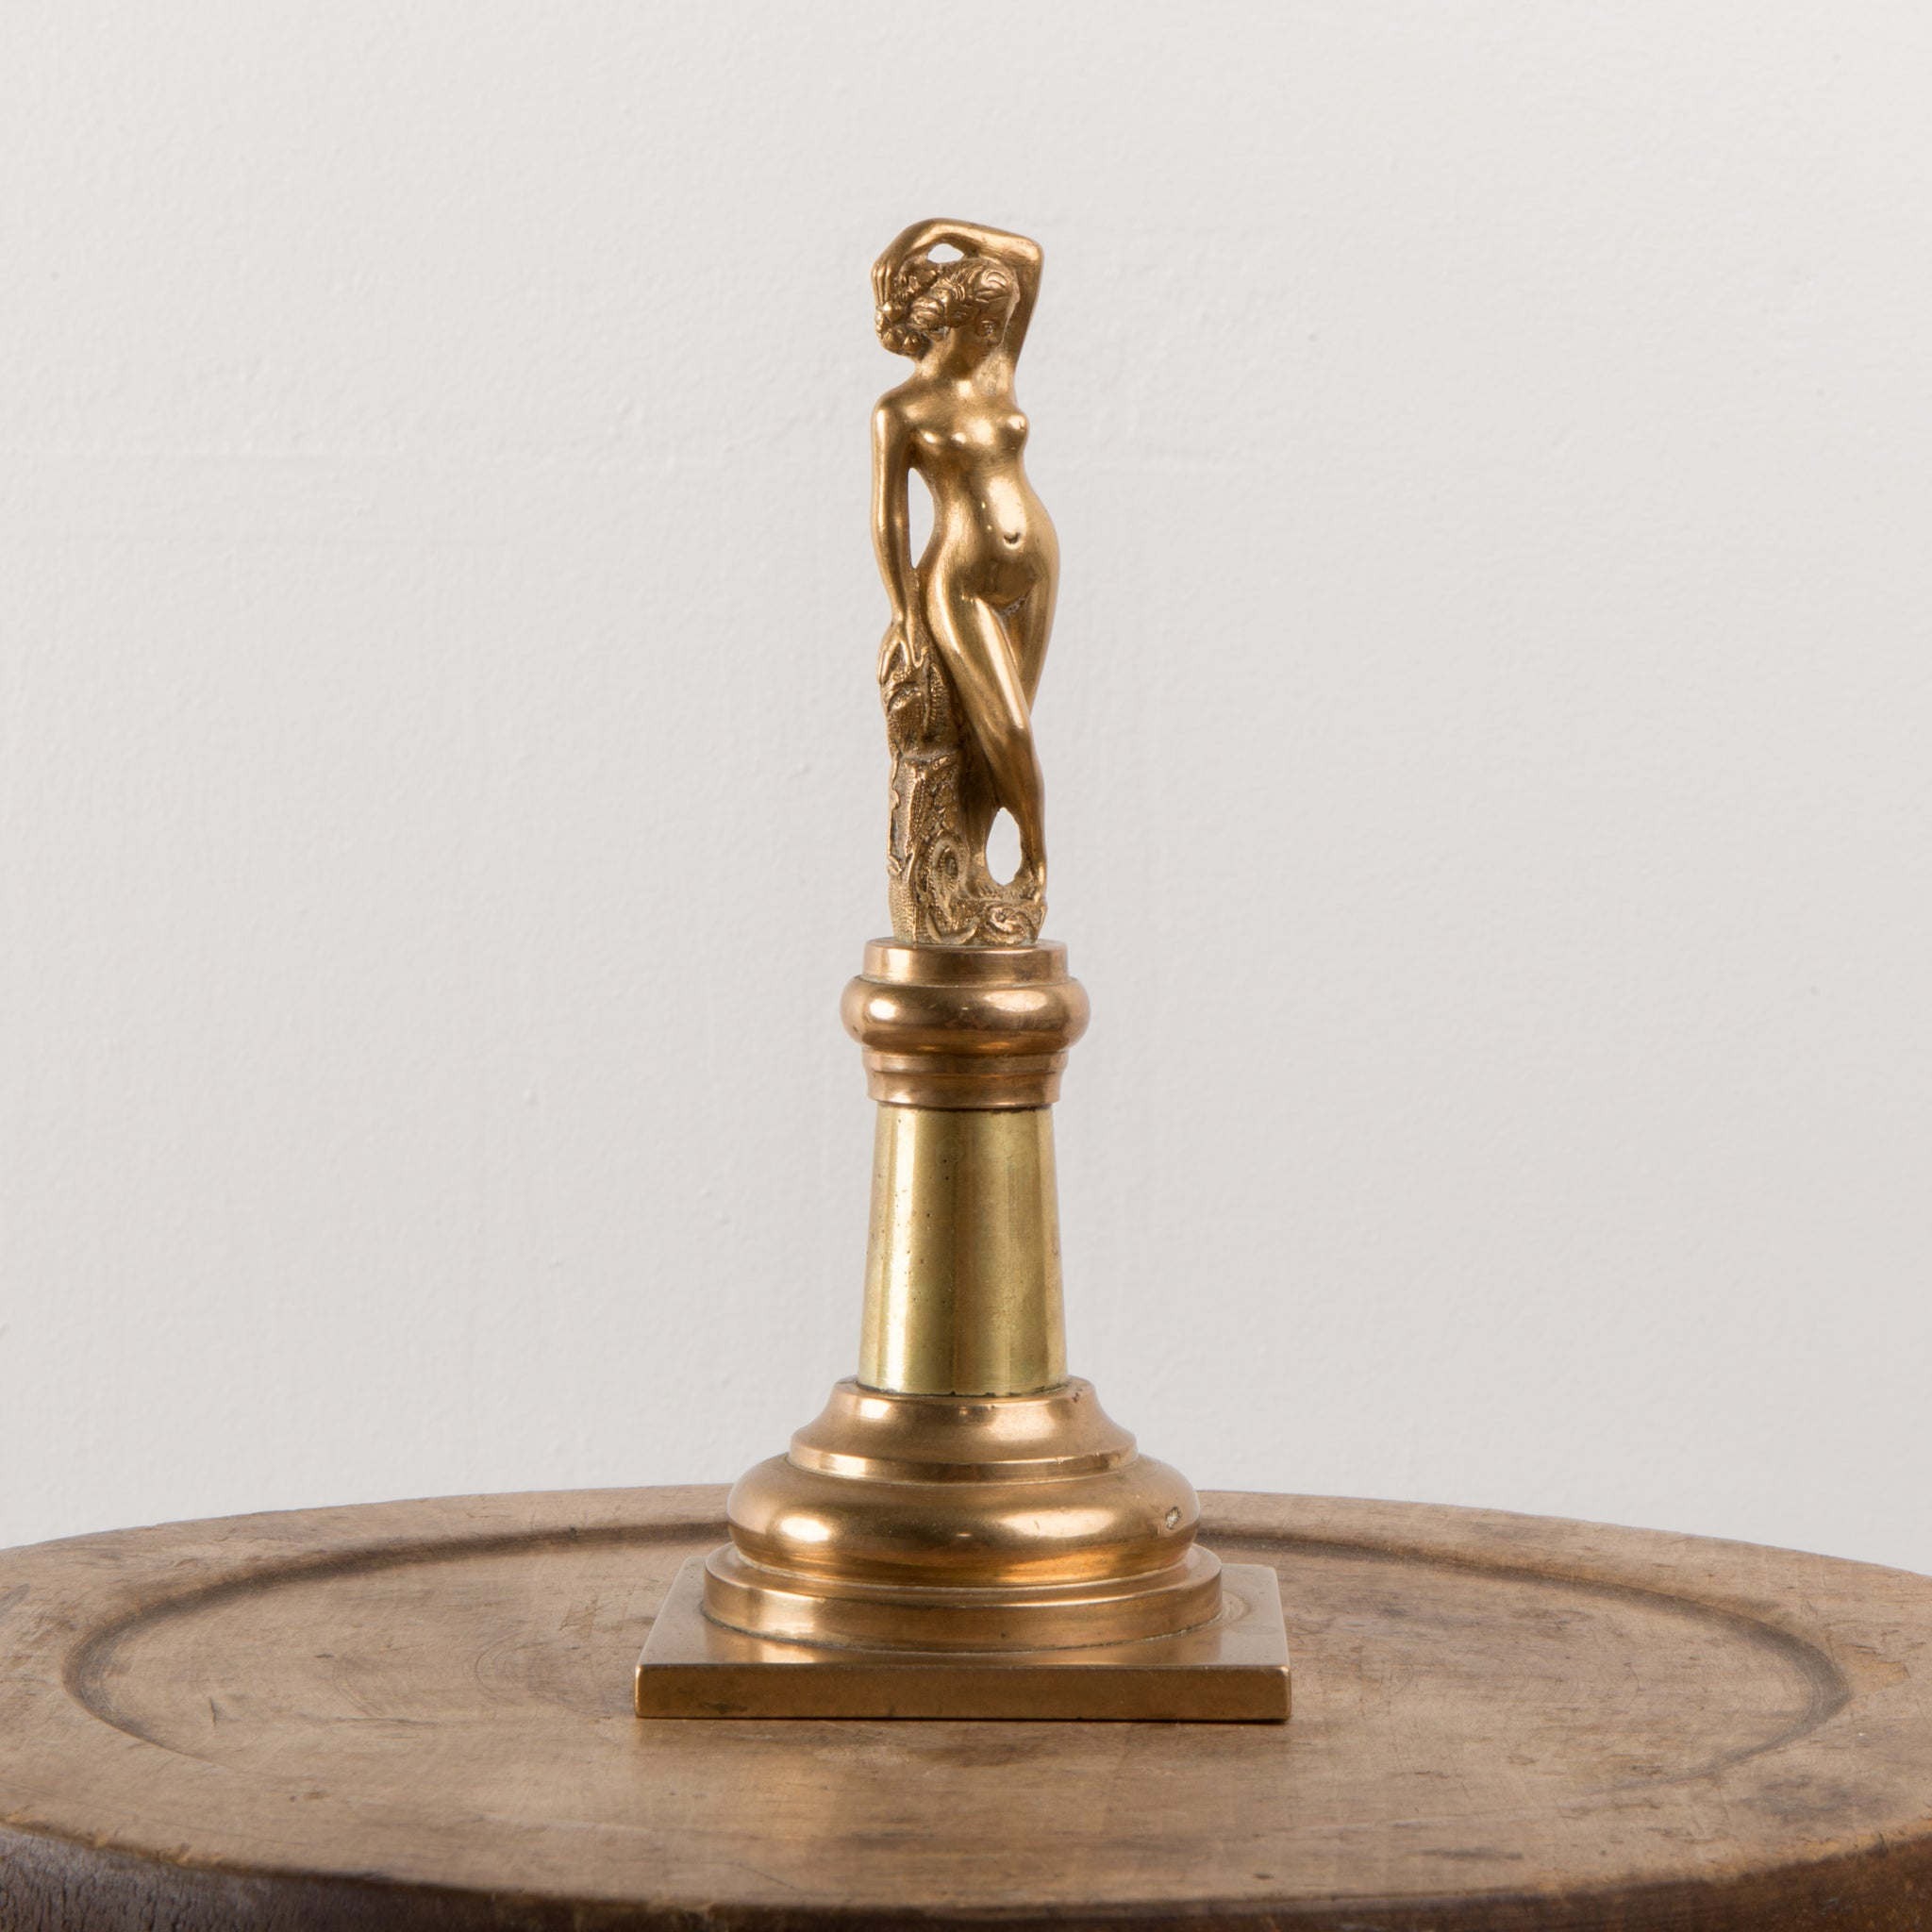 Danish art deco  Sculpture in Brass